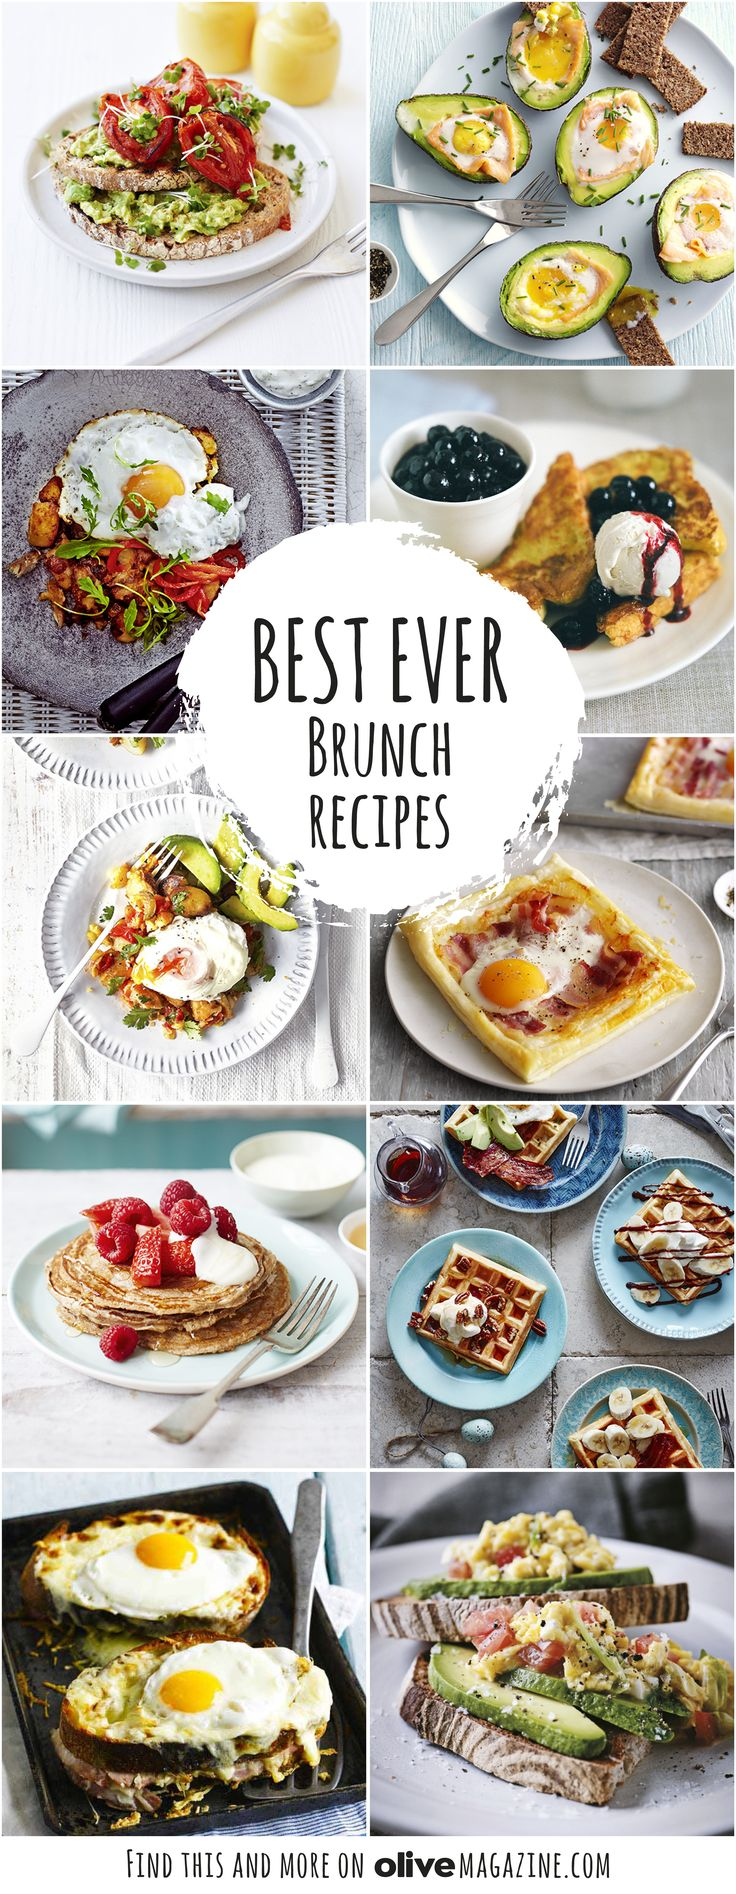 Brunch is such a luxury, and an easy way to enjoy a lazy weekend. Make one of our recipes for avocado on toast, ricotta pancakes and French toast, or our indulgent eggs recipes.